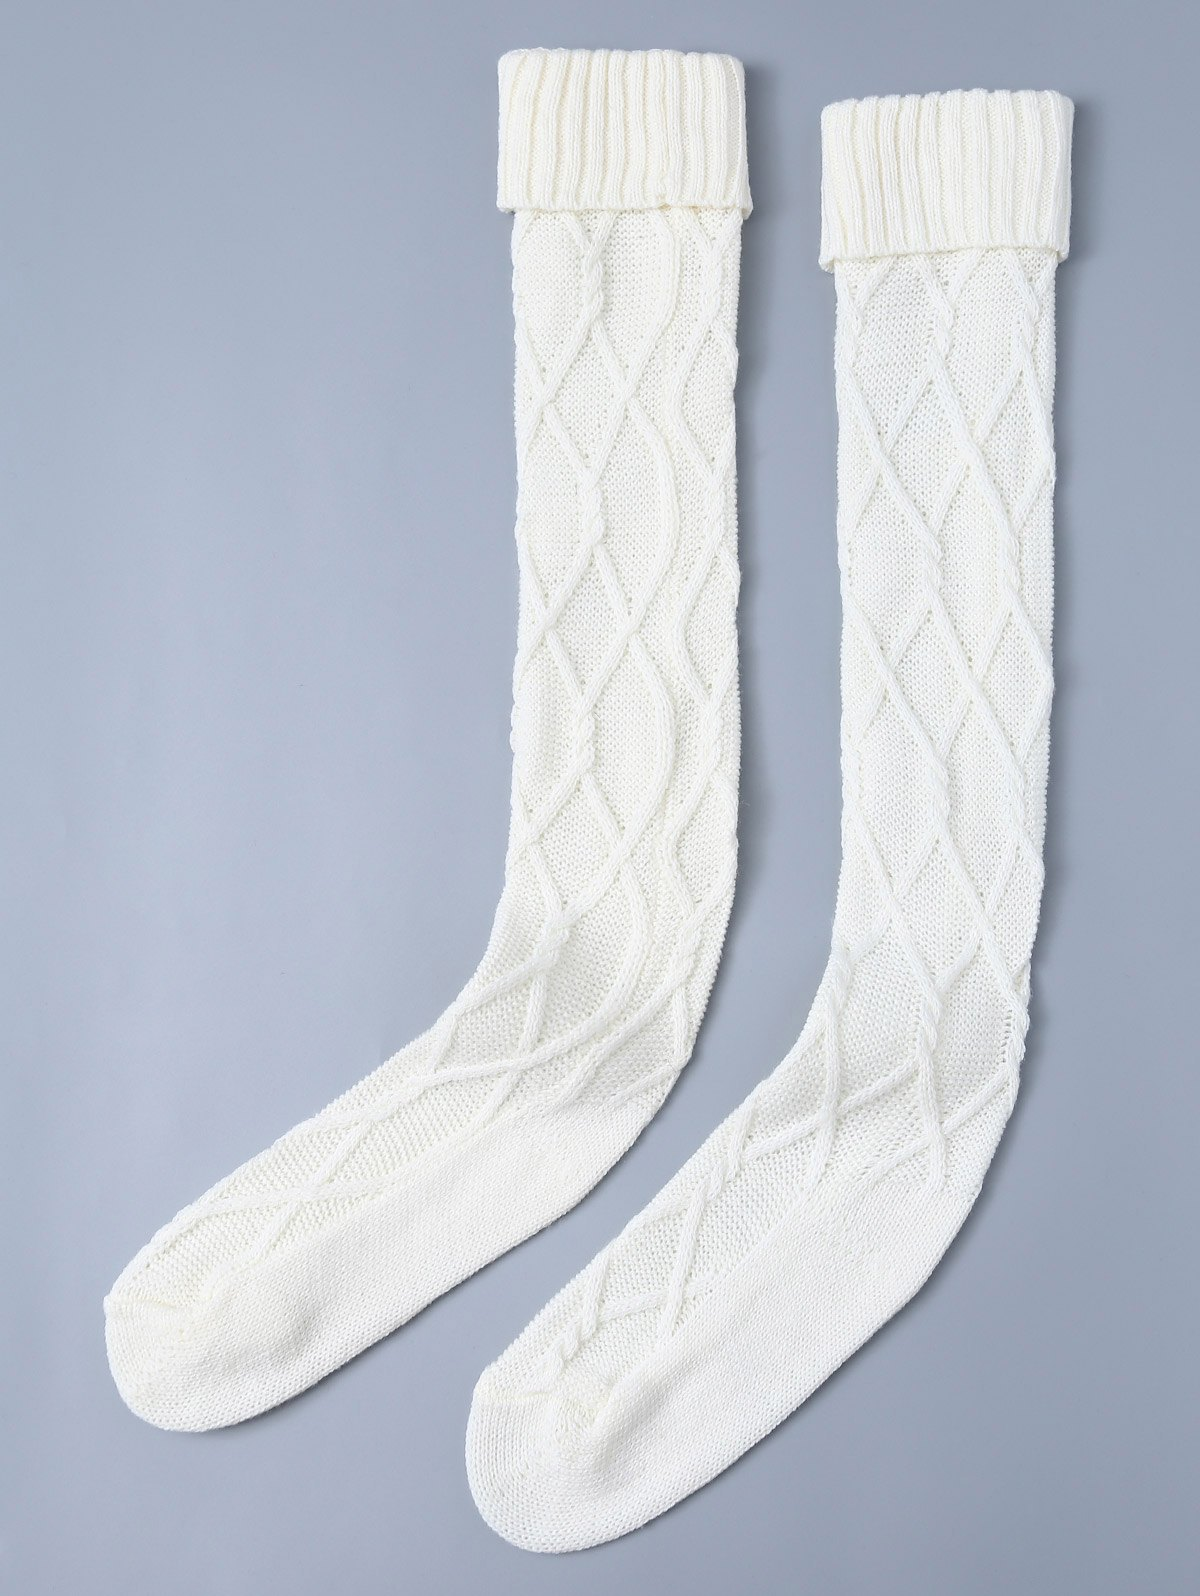 Knitting Notched Skinny StockingsAccessories<br><br><br>Size: ONE SIZE<br>Color: WHITE